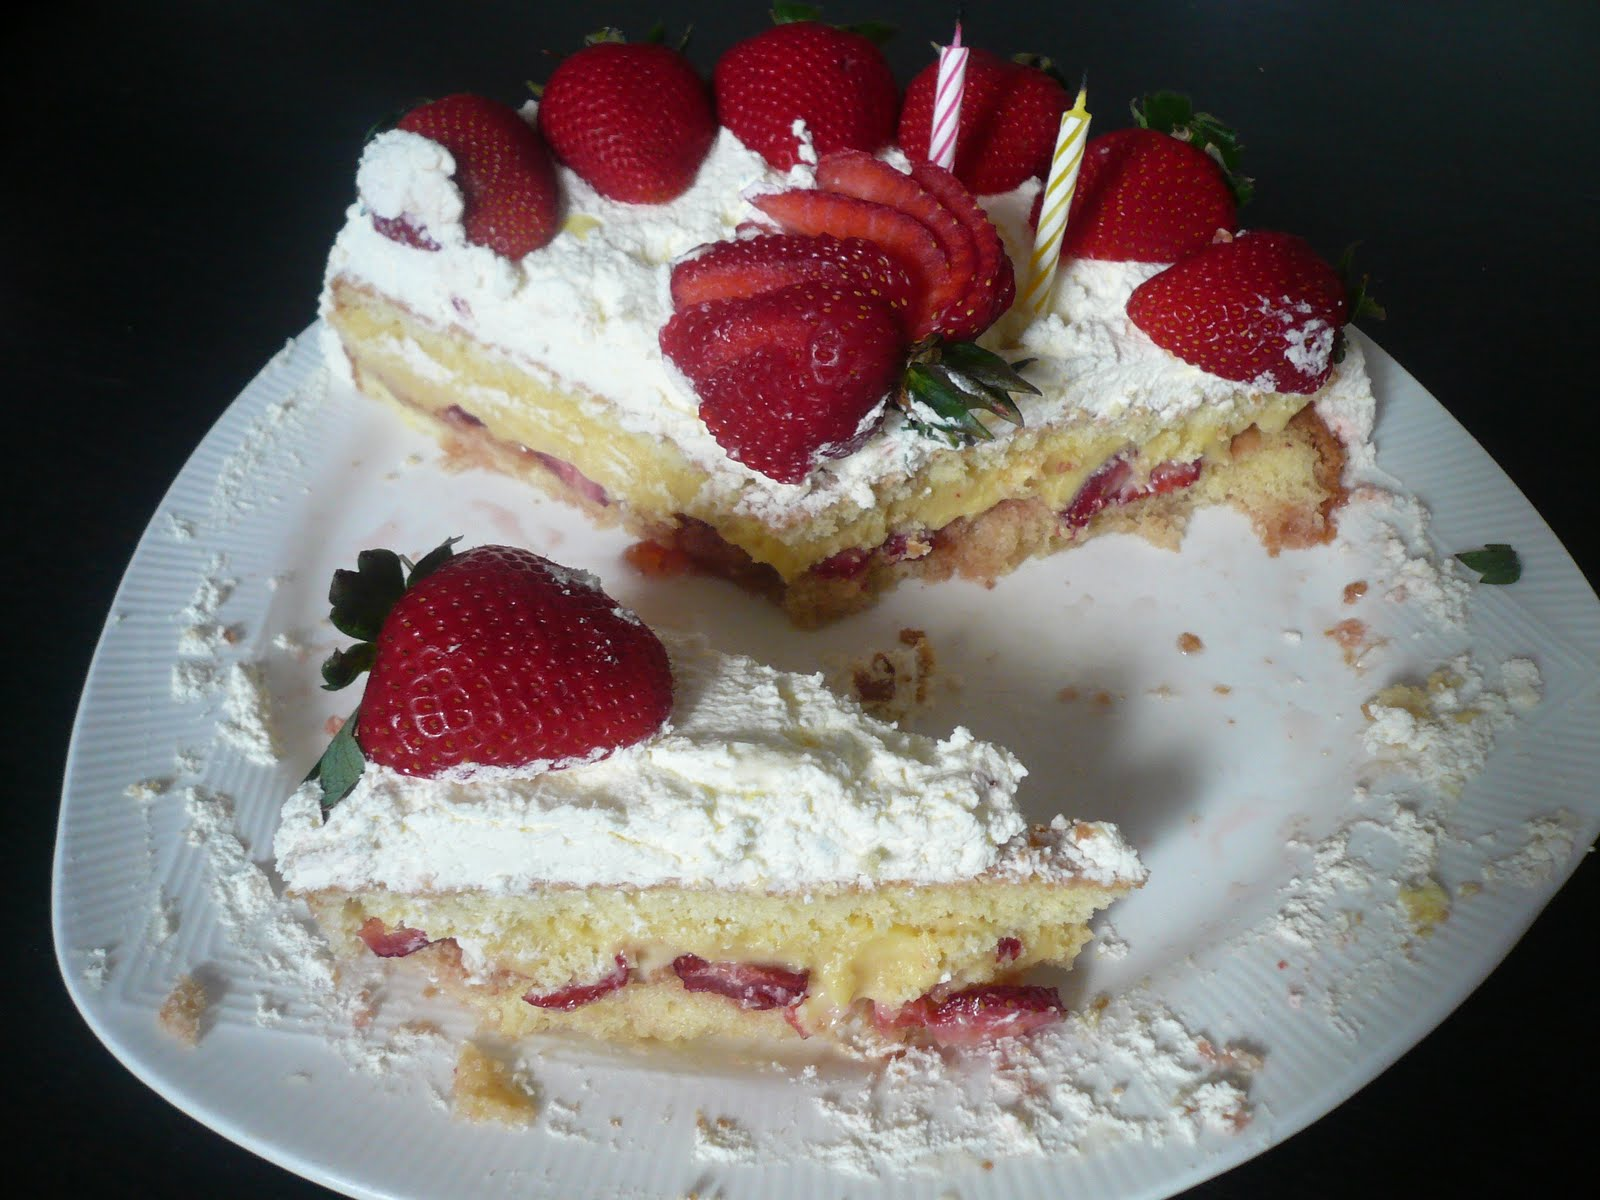 Girl with Spoon: Strawberry Cream Cake